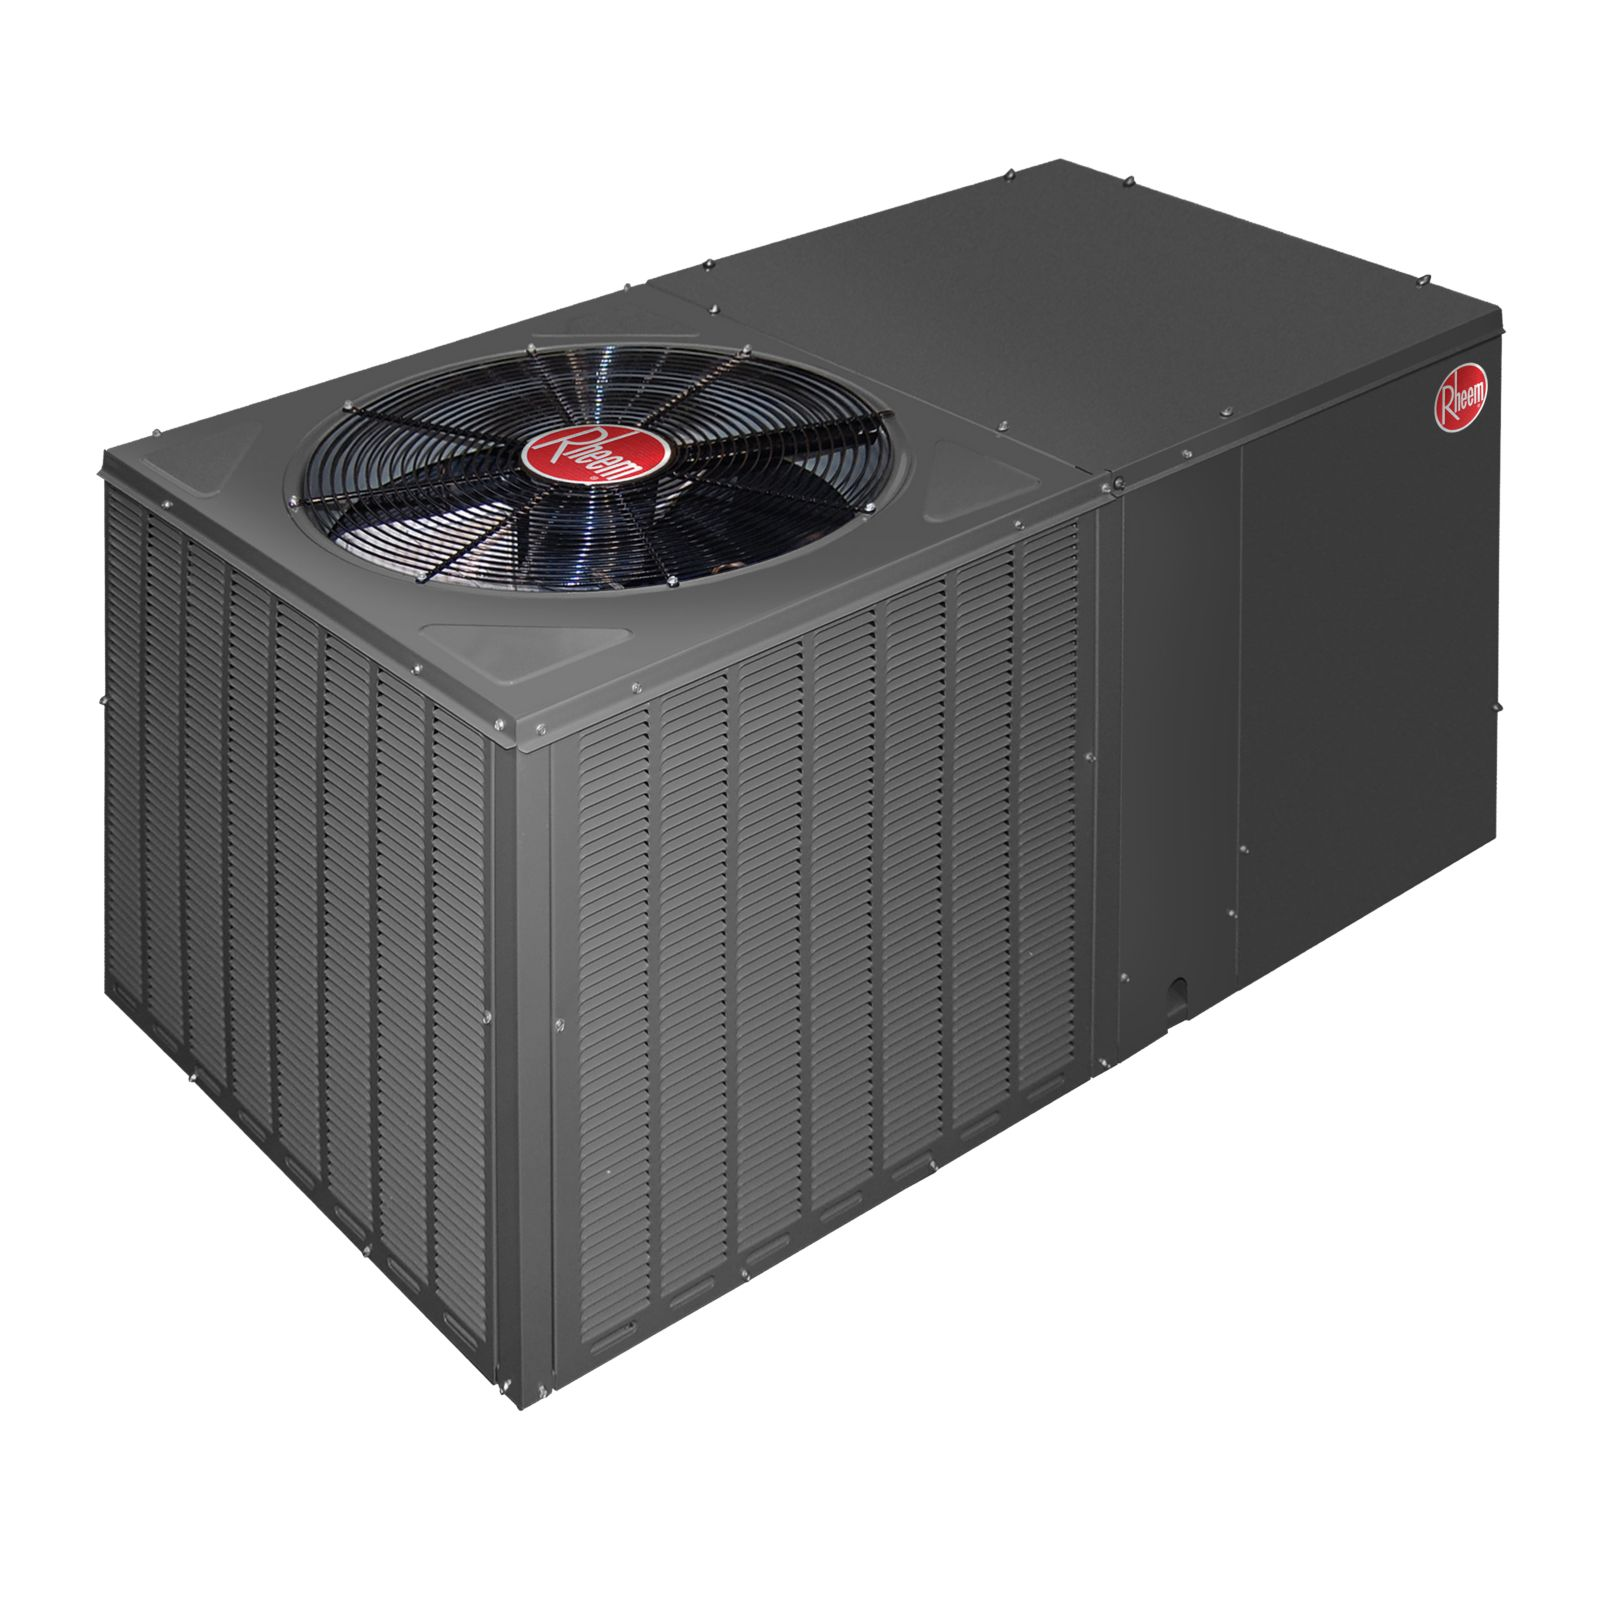 Rheem RQNM-A060JK000 - Classic 5 Ton, 13 SEER, R410A, Packaged Heat Pump With Horizontal Discharge, 208-230 V, 1 Ph, 60 Hz